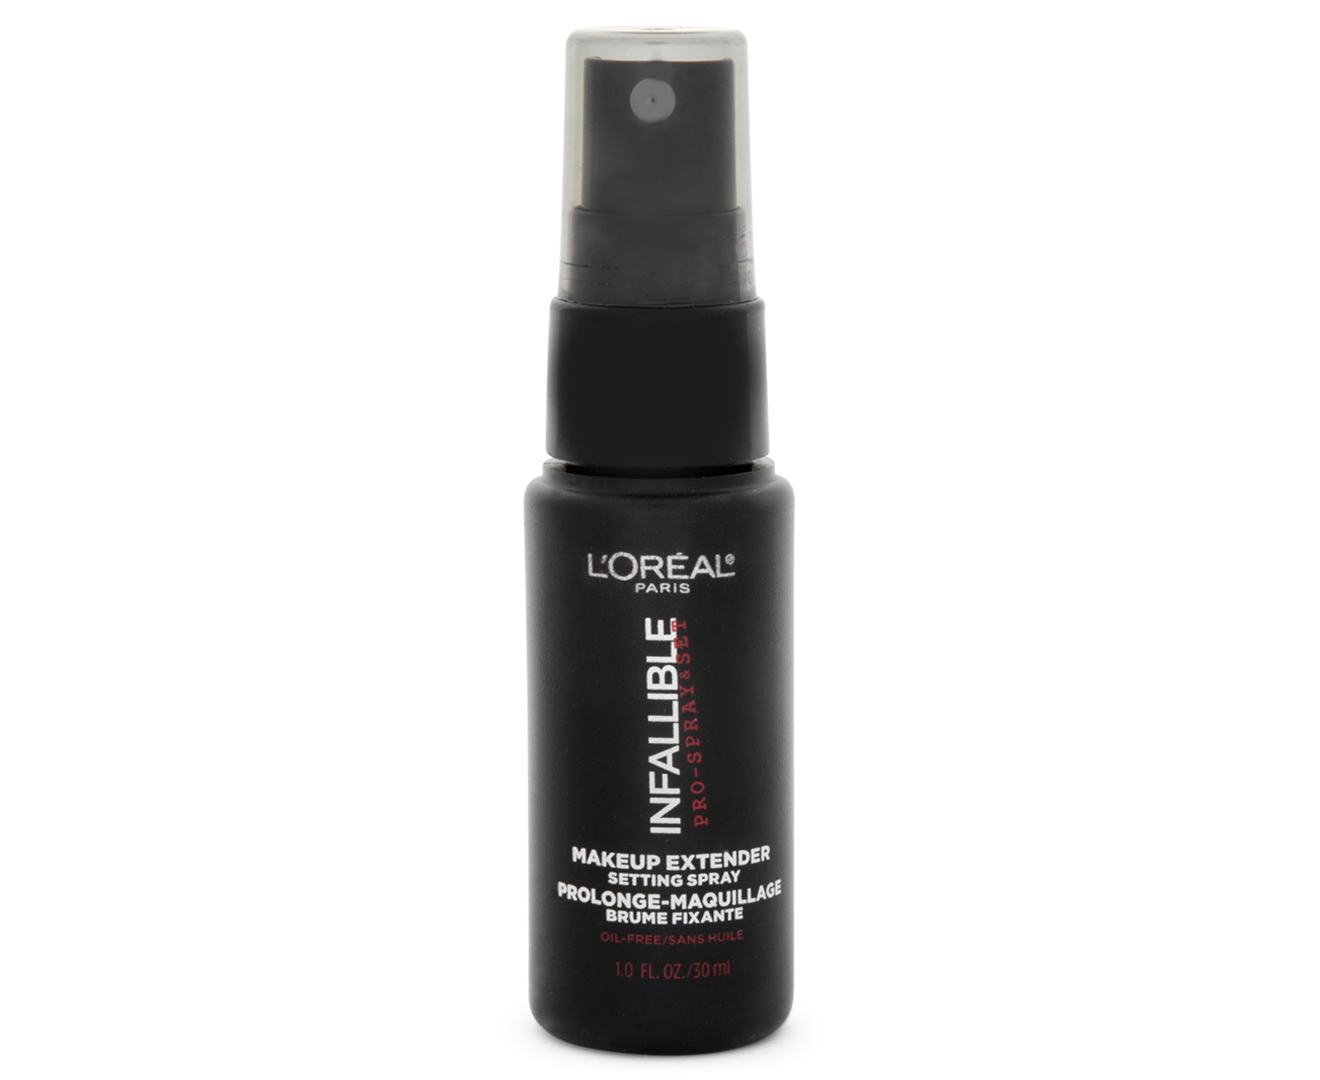 3 x L'Oréal Infallible Makeup Extender Setting Spray 30mL ...